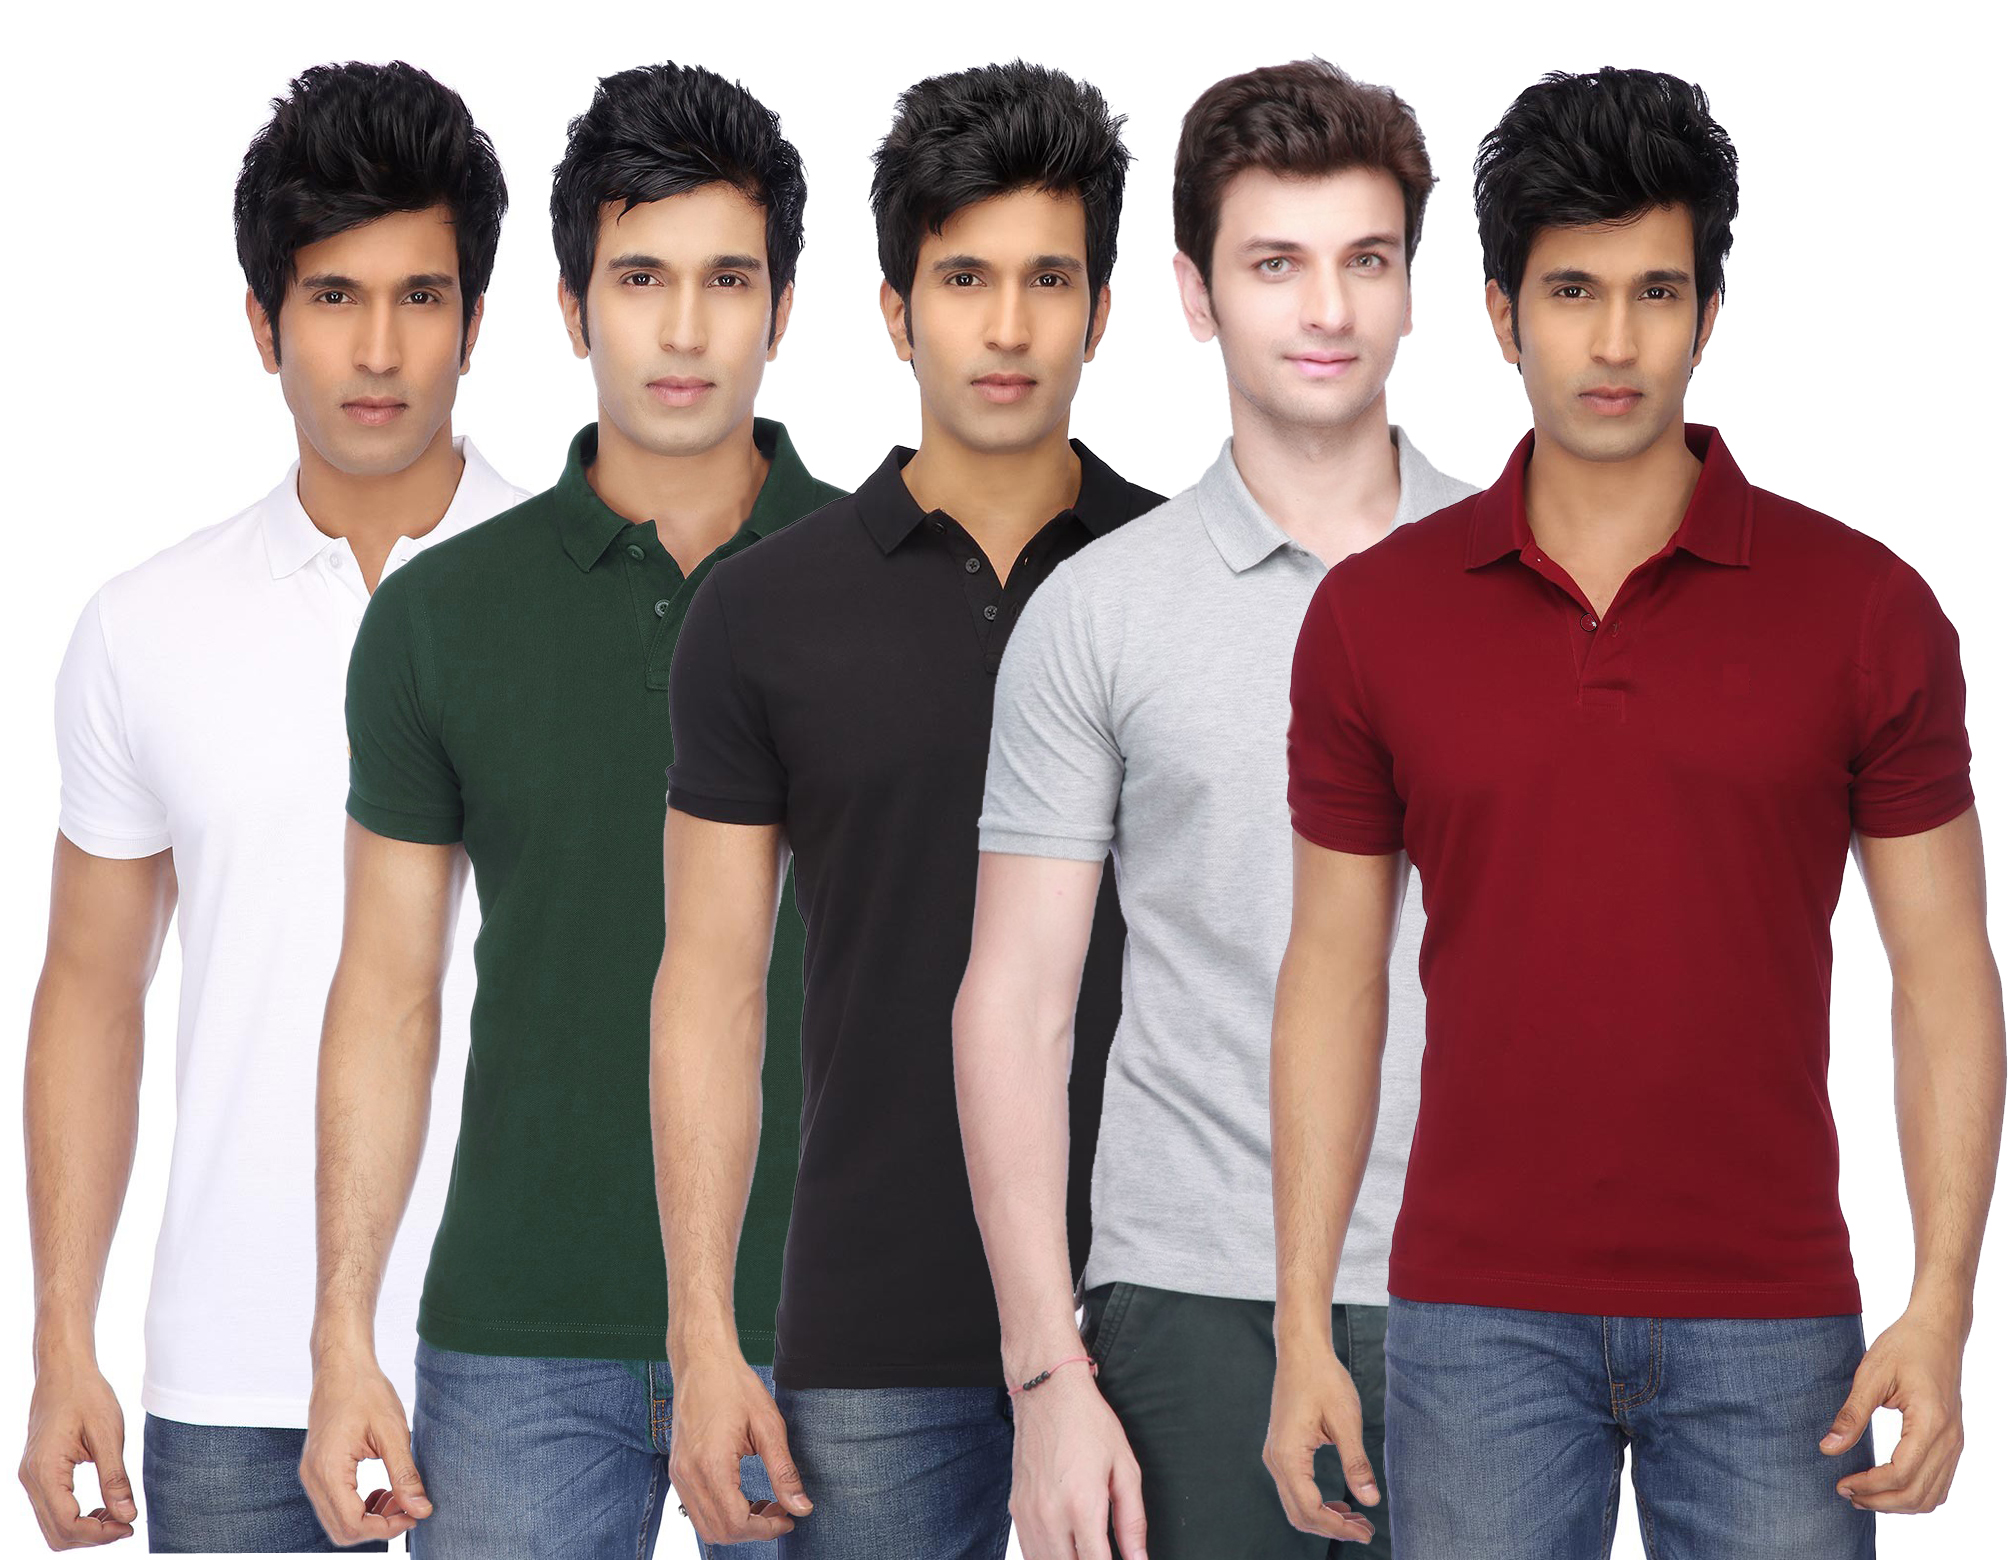 K TEX Mens Multicolor Cotton Blend Gyming Tshirt Pack of 5